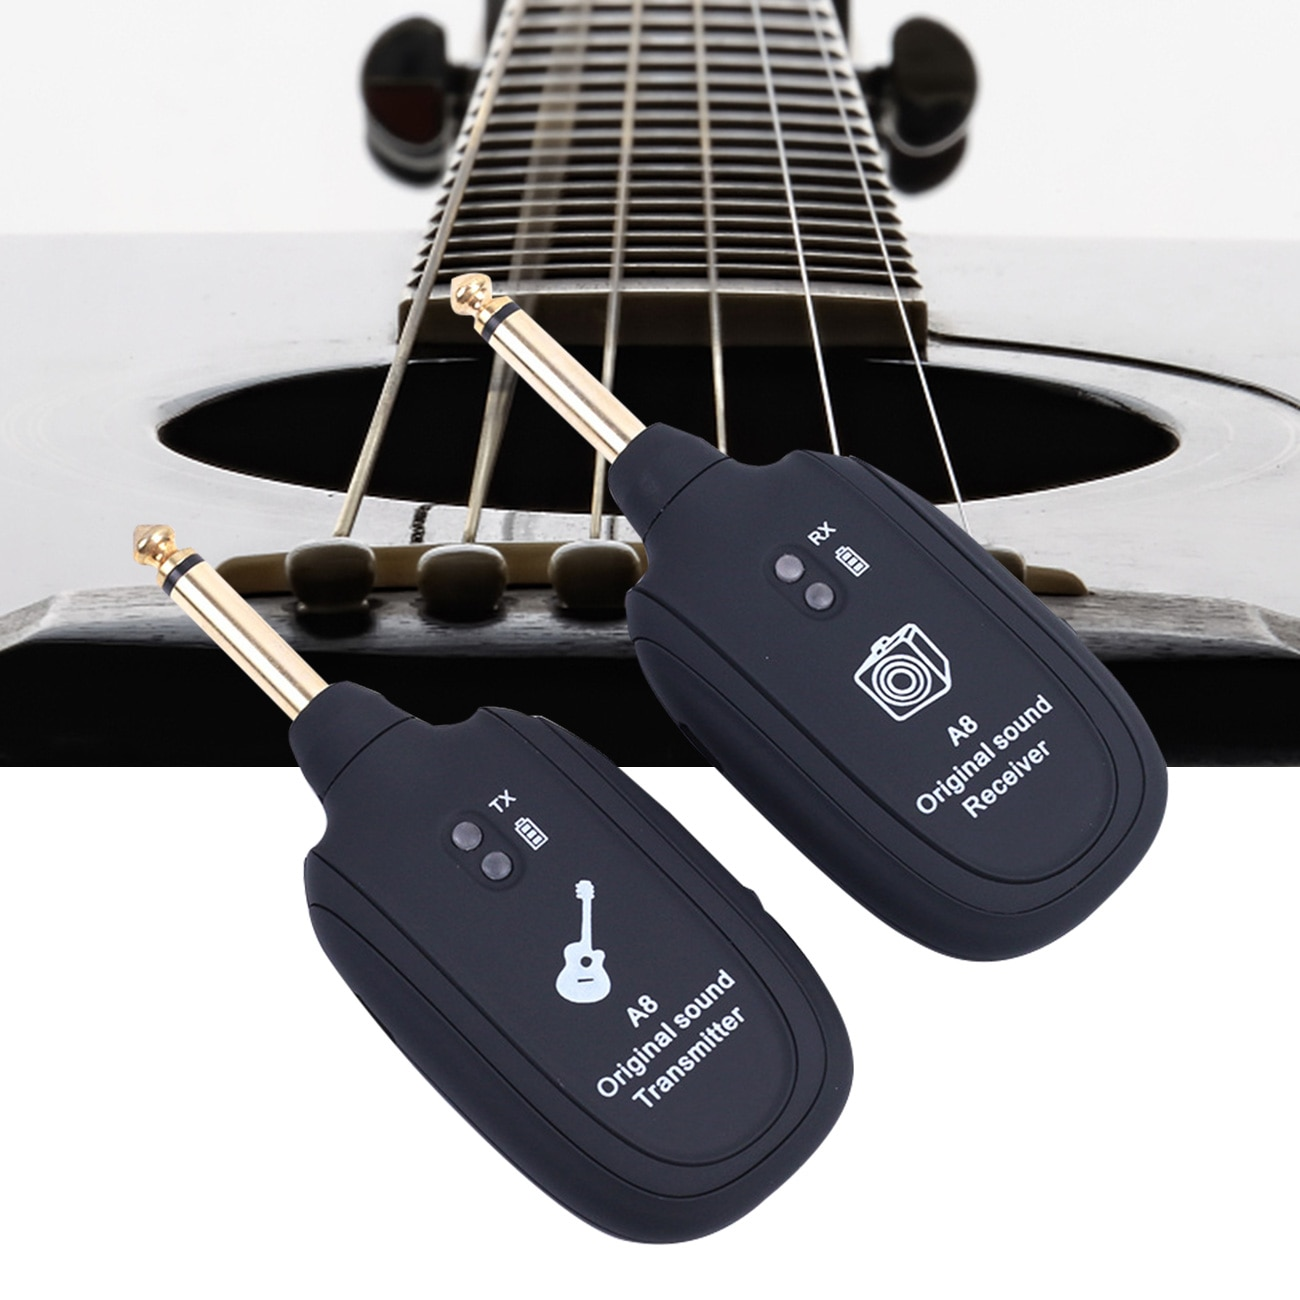 2pcs UHF Guitar Wireless System Transmitter Receiver Wireless Original Sound Guitar Transmitter Built-In Rechargeable Battery enlarge